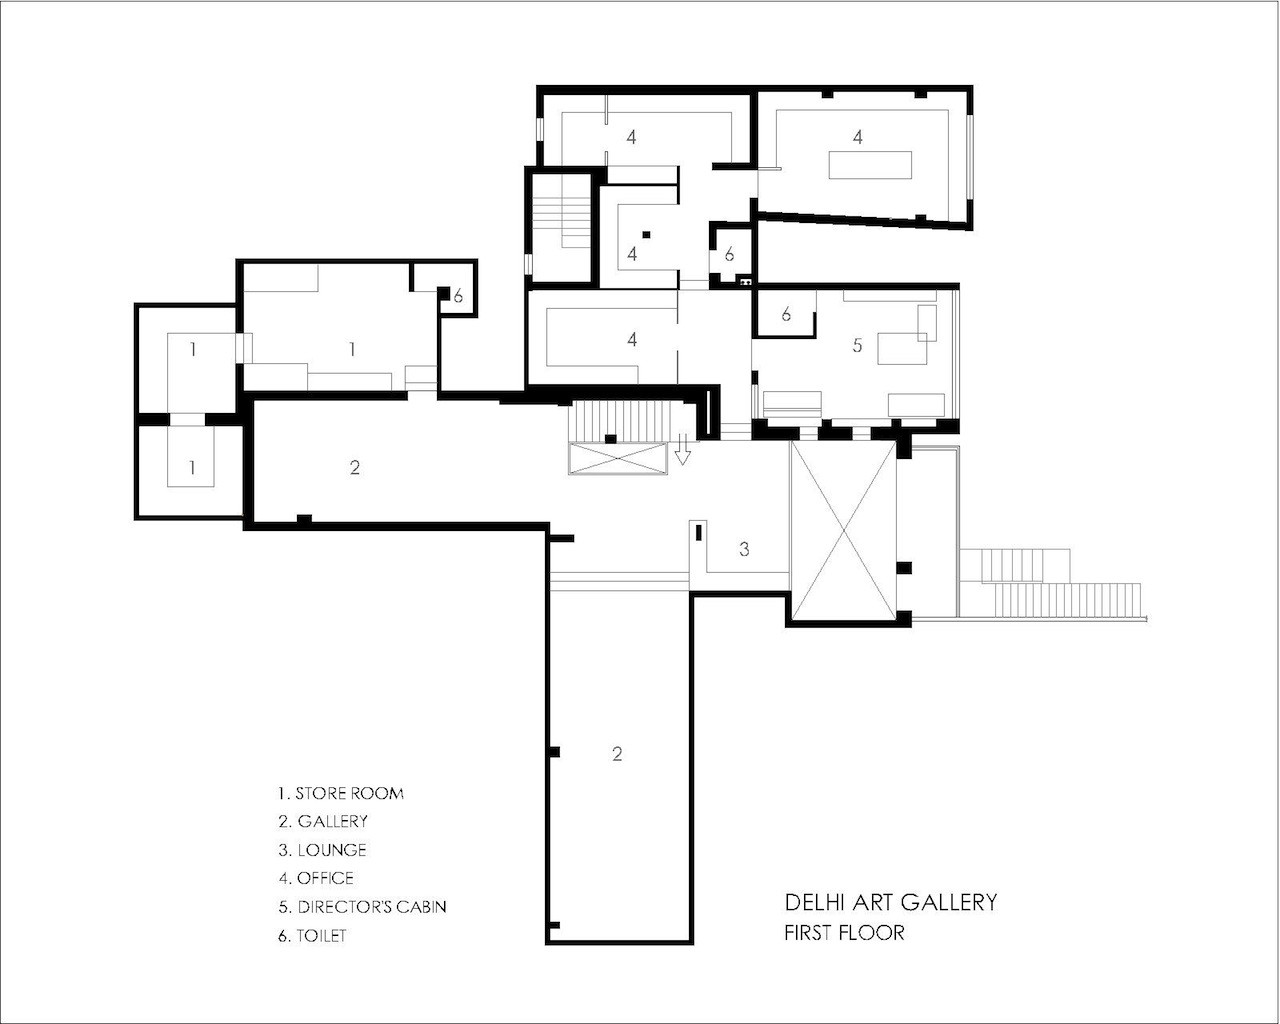 gallery architecture plan - photo #3